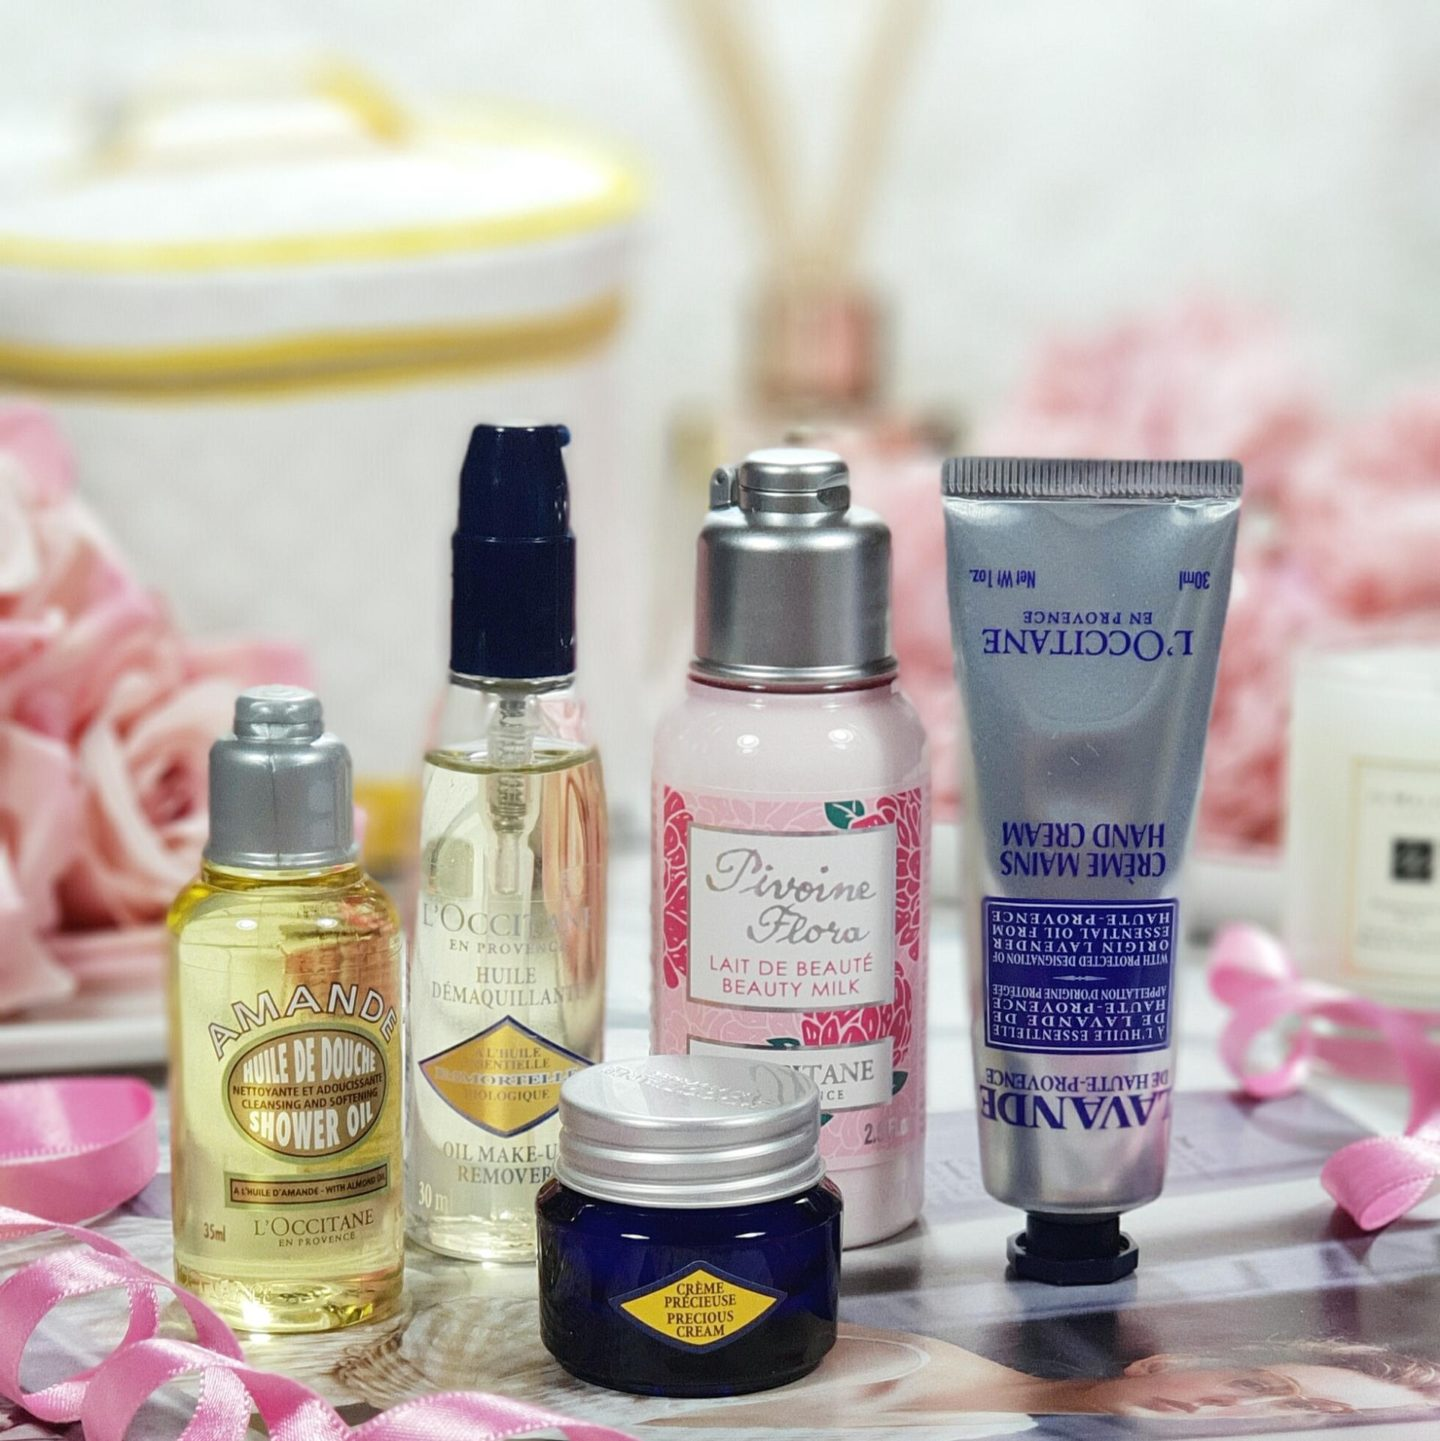 Fashion Mumblr X L'Occitane